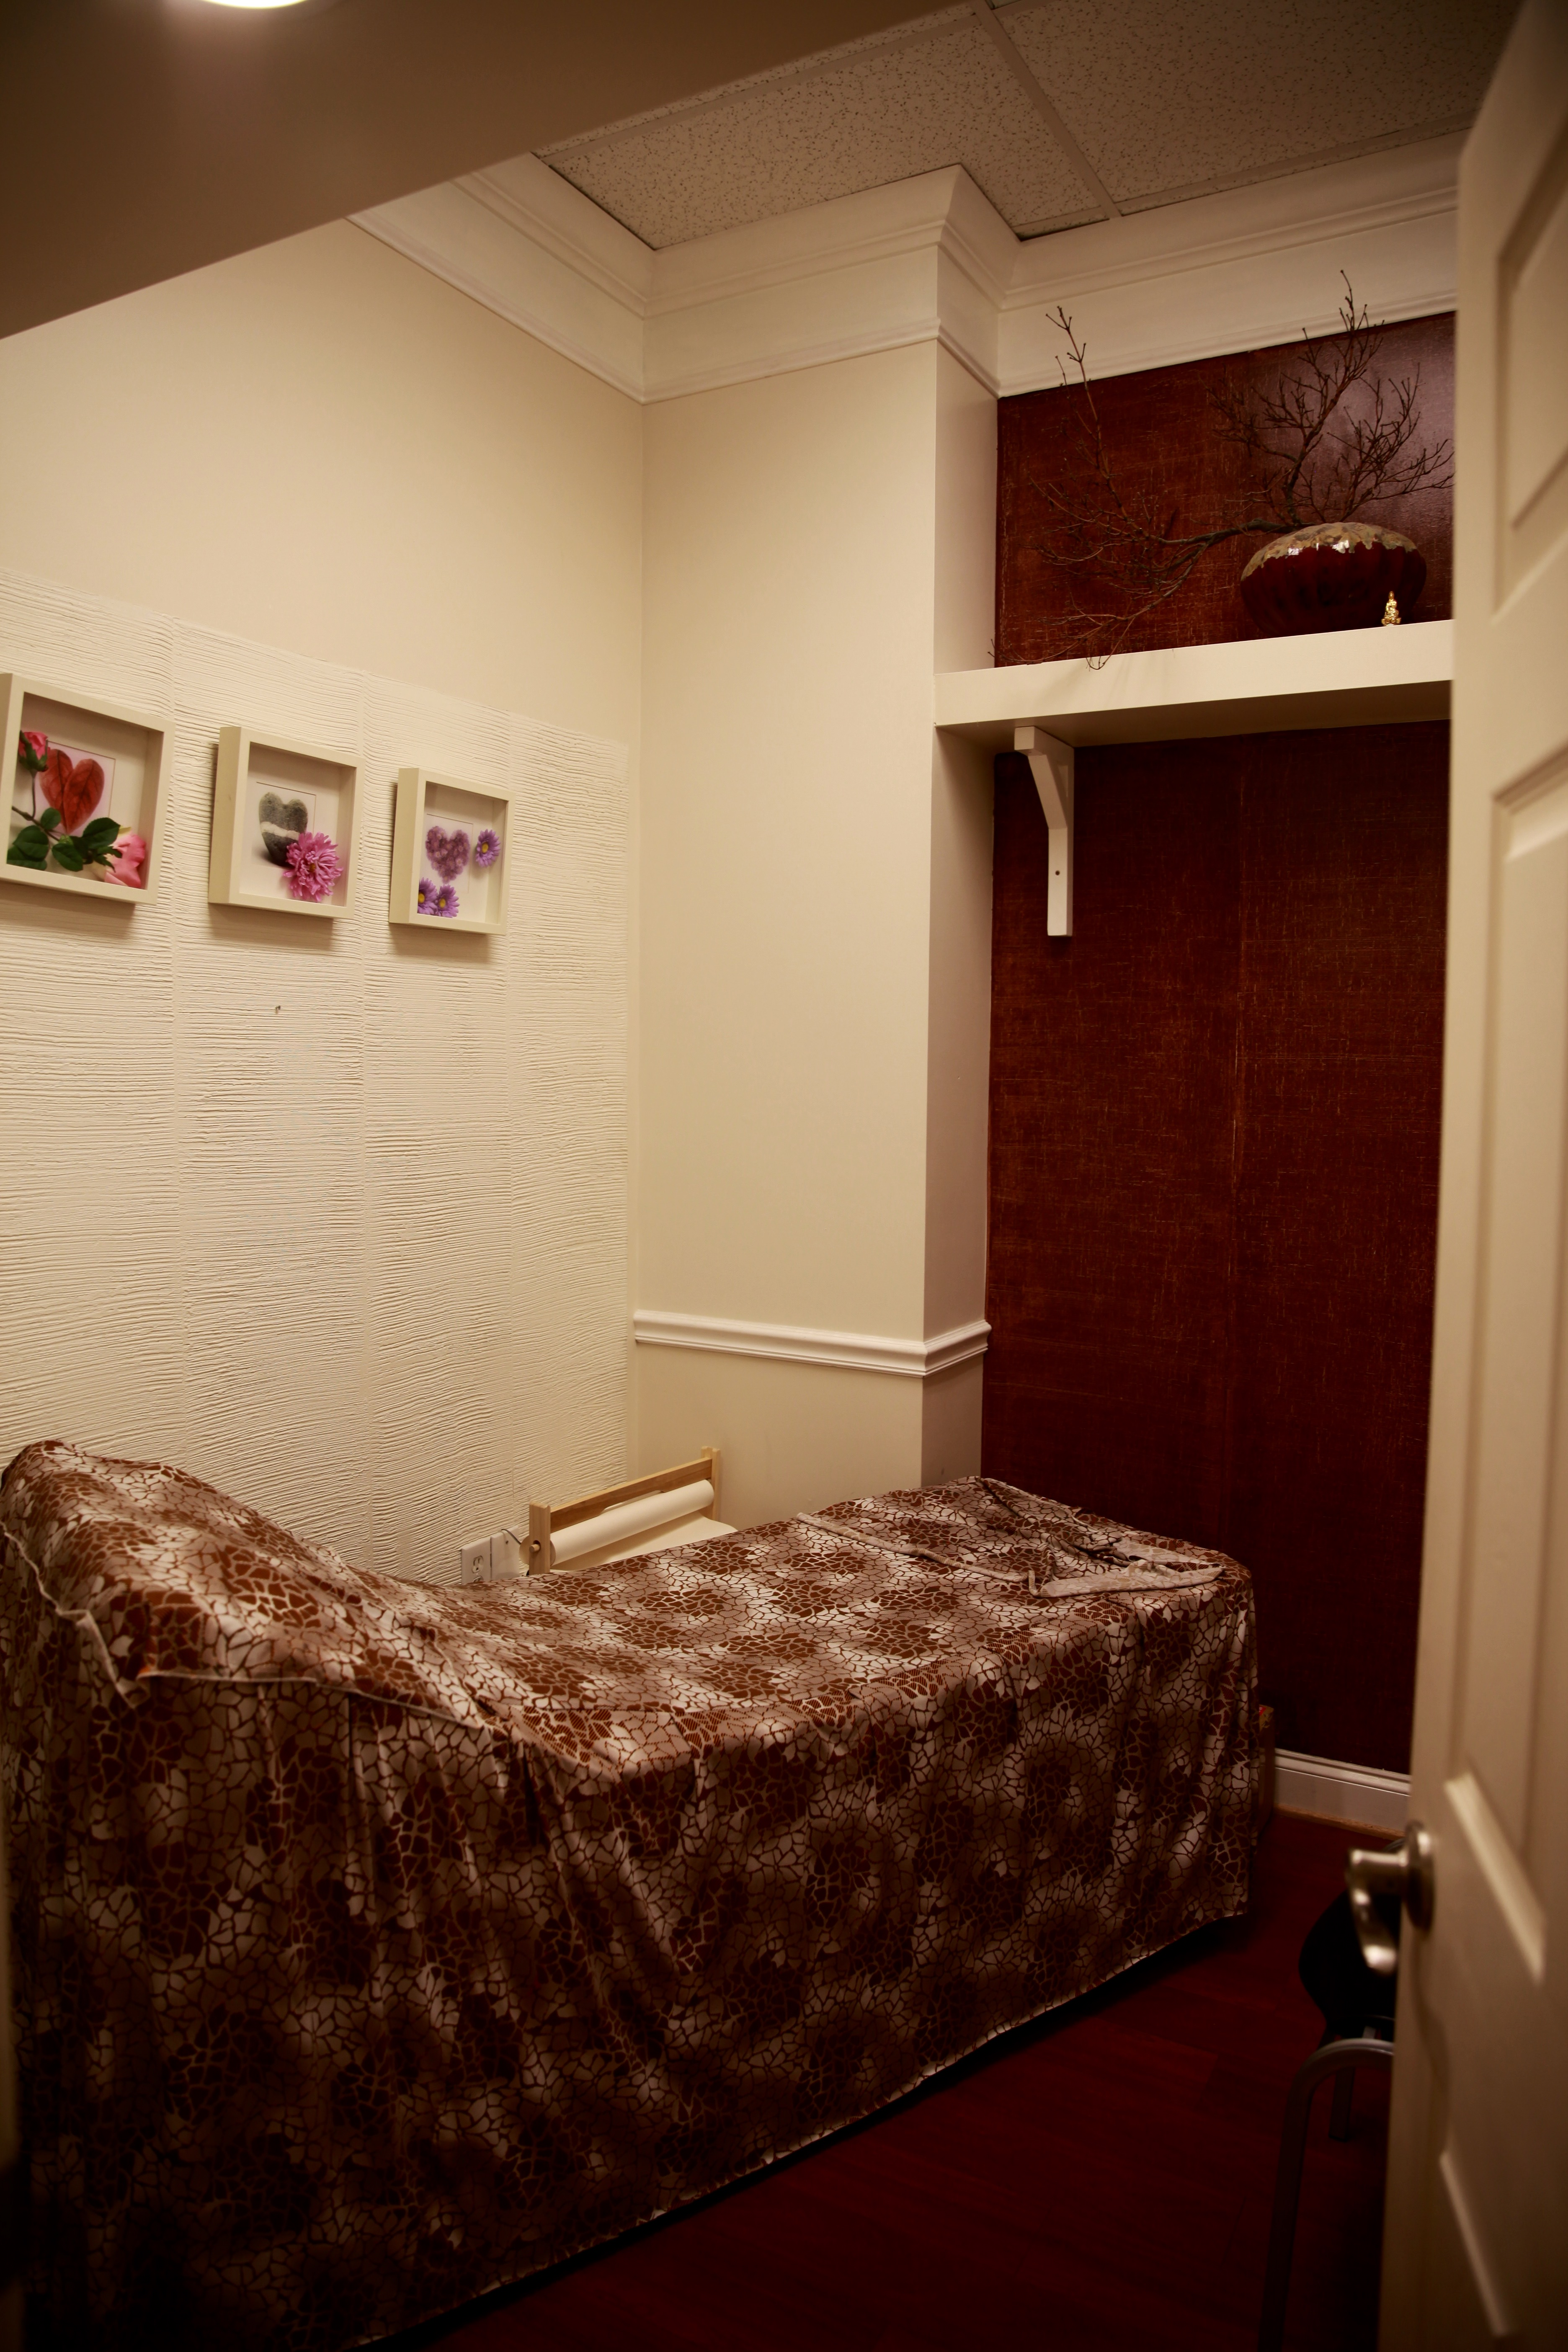 NAILS PRO and SPA, Owings Mills MD